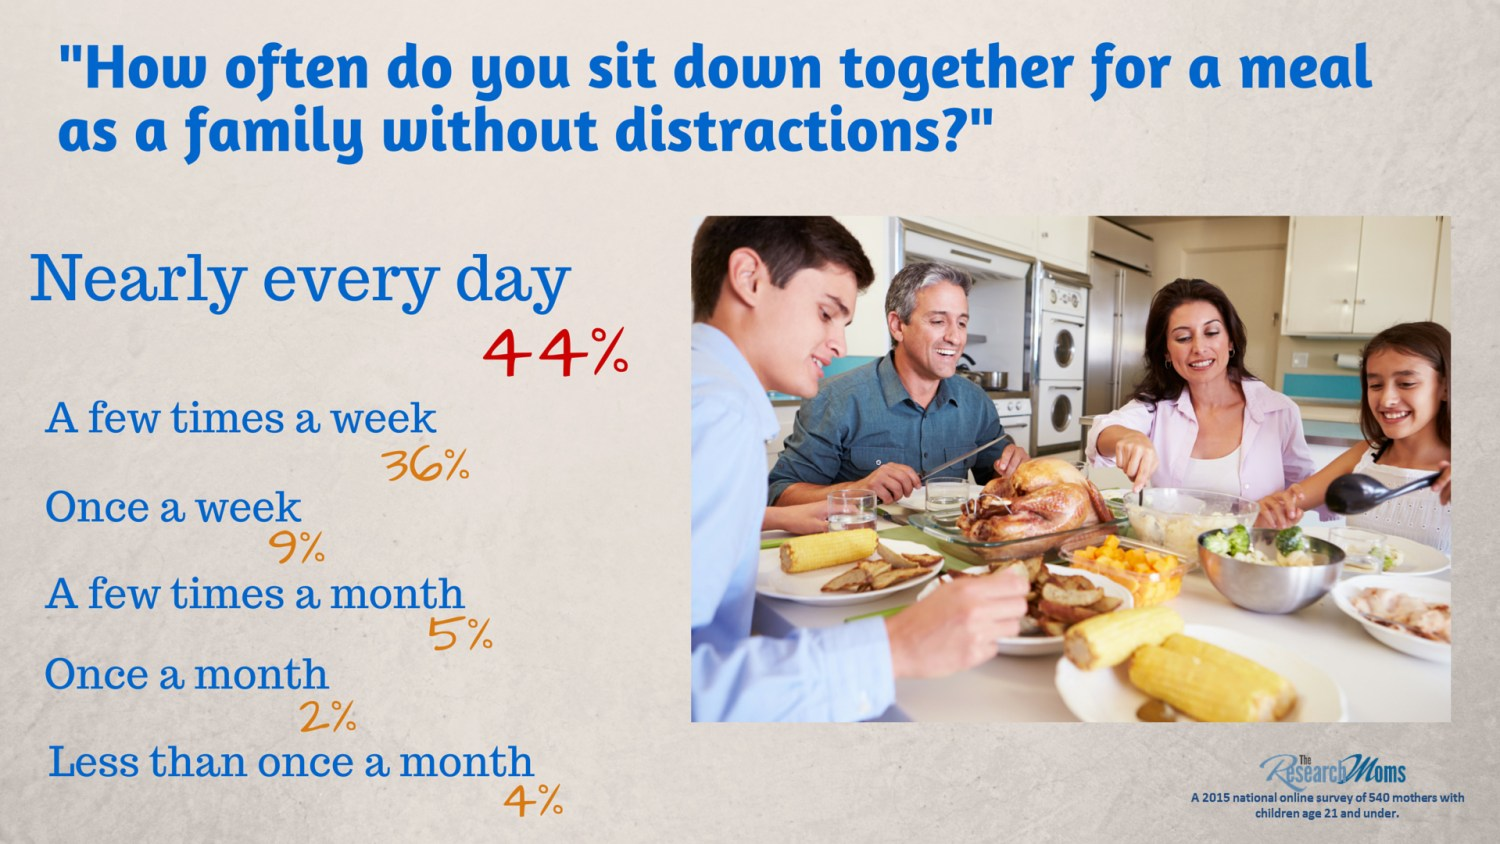 _How often do you sit down together for